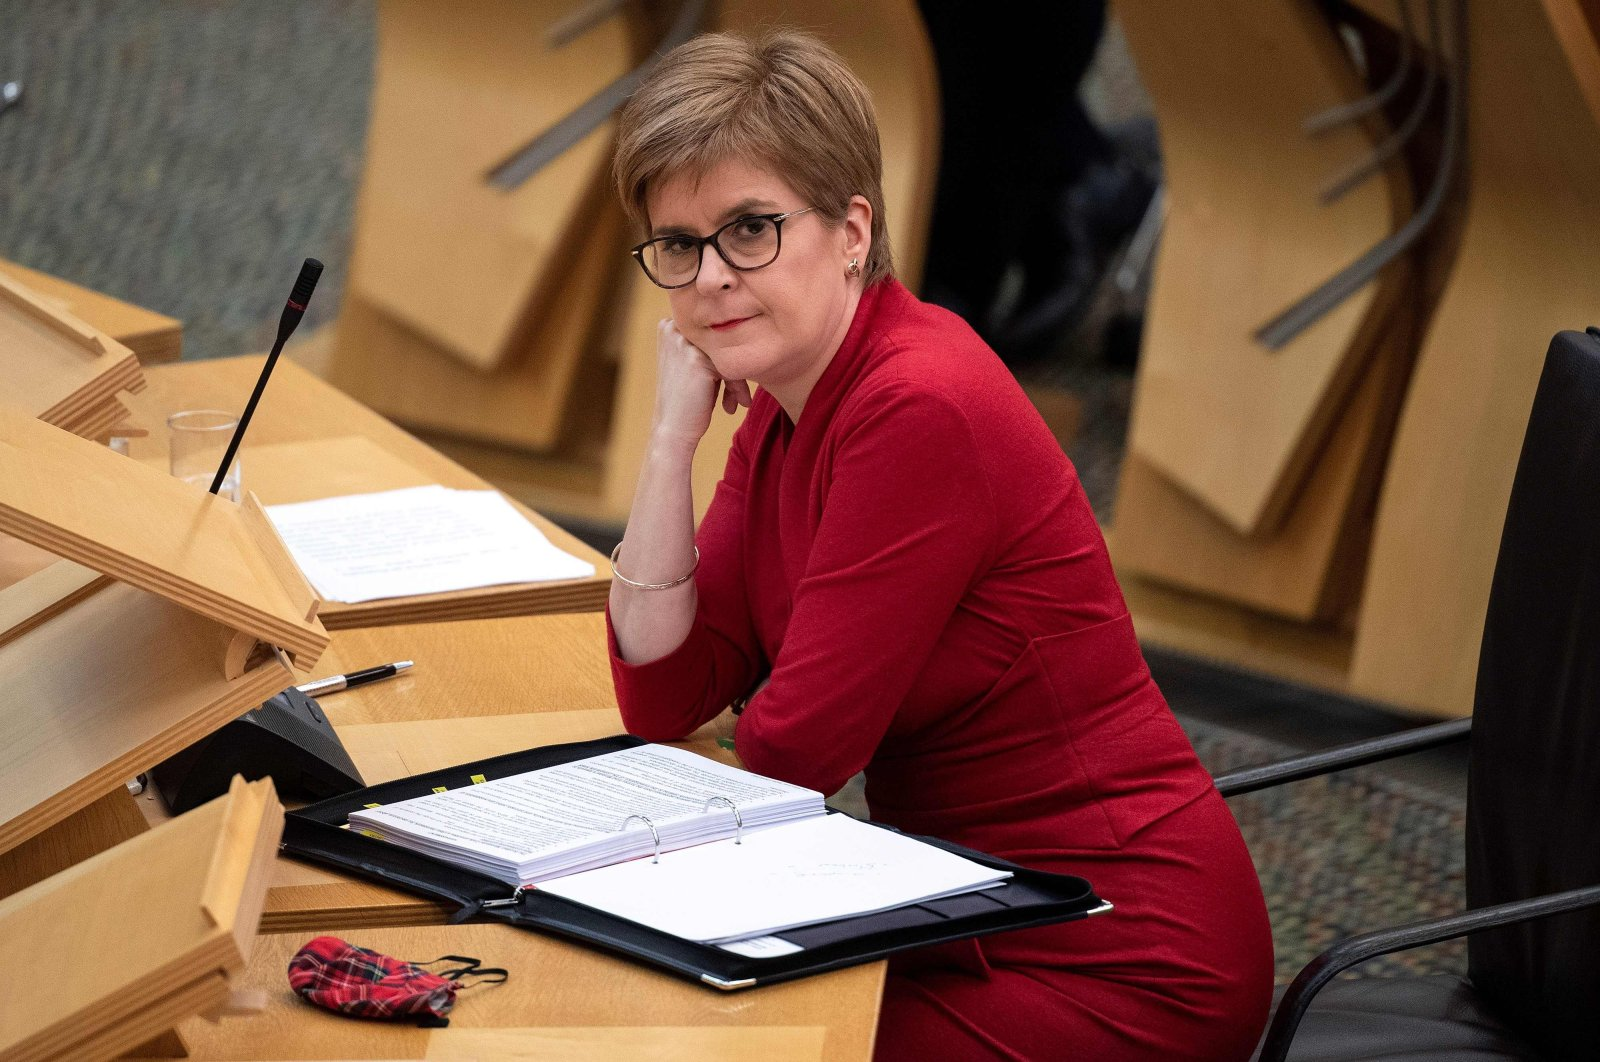 Scotland's First Minister Nicola Sturgeon reacts as she attends the First Minister's Questions session at the Scottish Parliament in Holyrood, Edinburgh, Nov. 26, 2020. (AFP Photo)